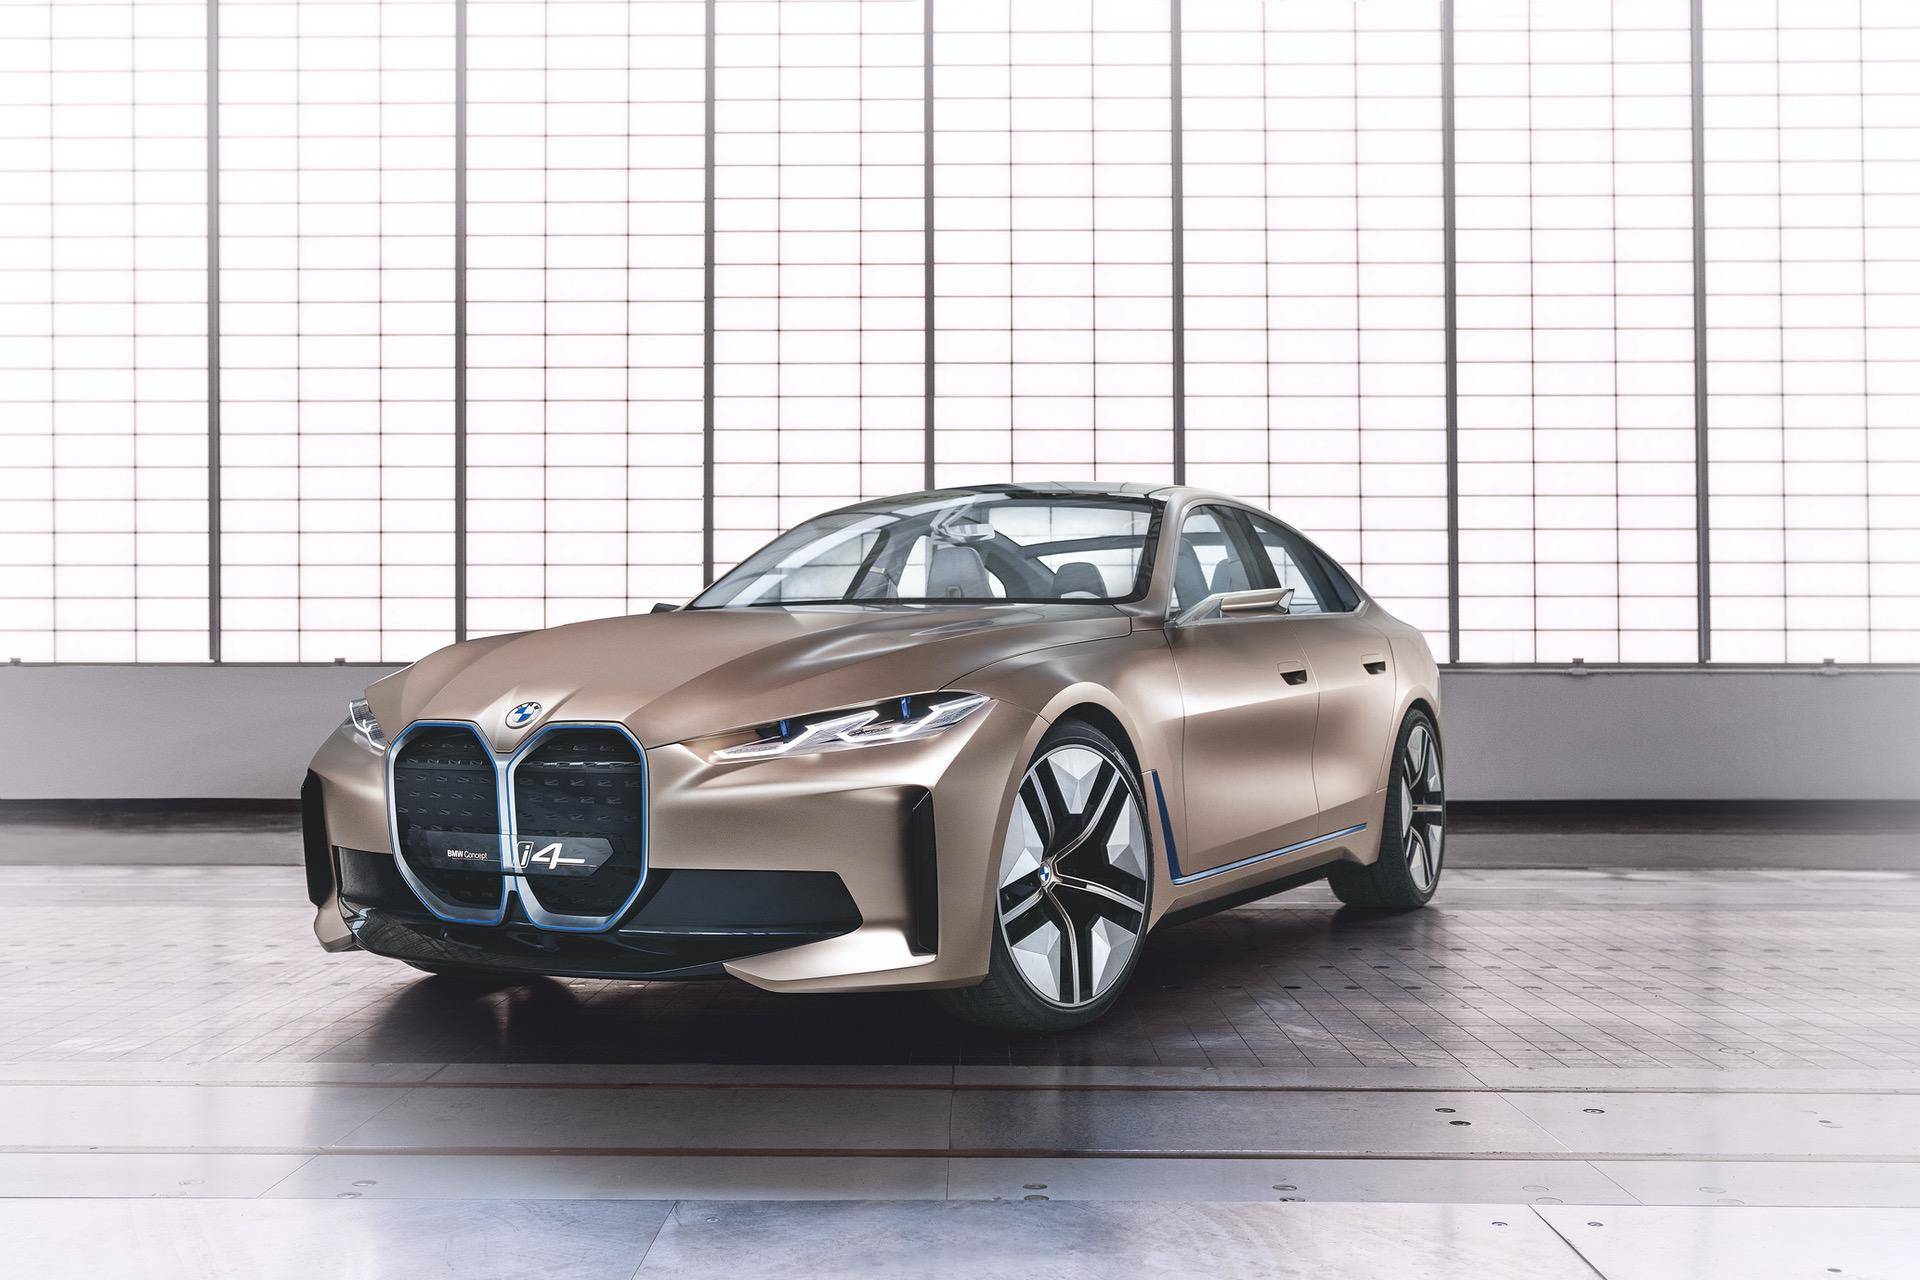 BMW Concept i4 copper color 01